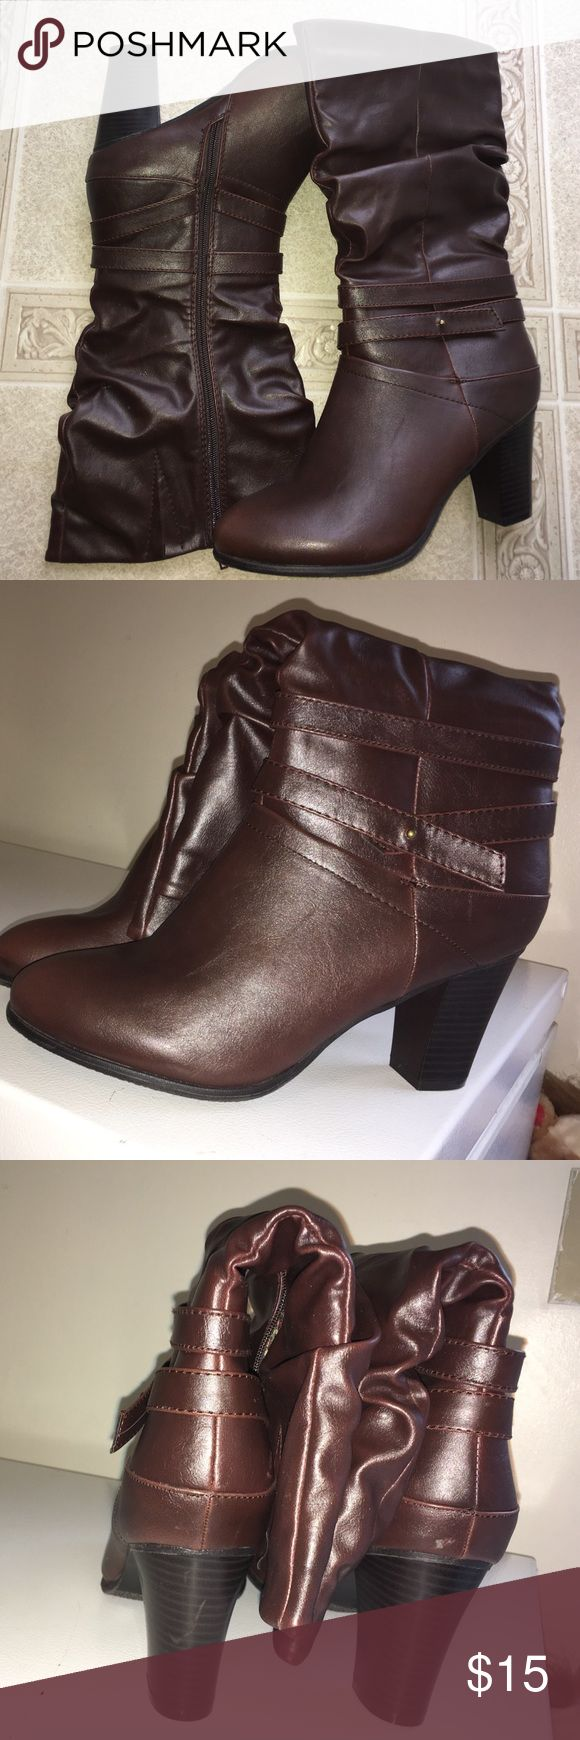 New brown wide calf boots Maurice's brown boots never worn wide calf heels 3.5 inches the are 18 circumference Maurices Shoes Heeled Boots